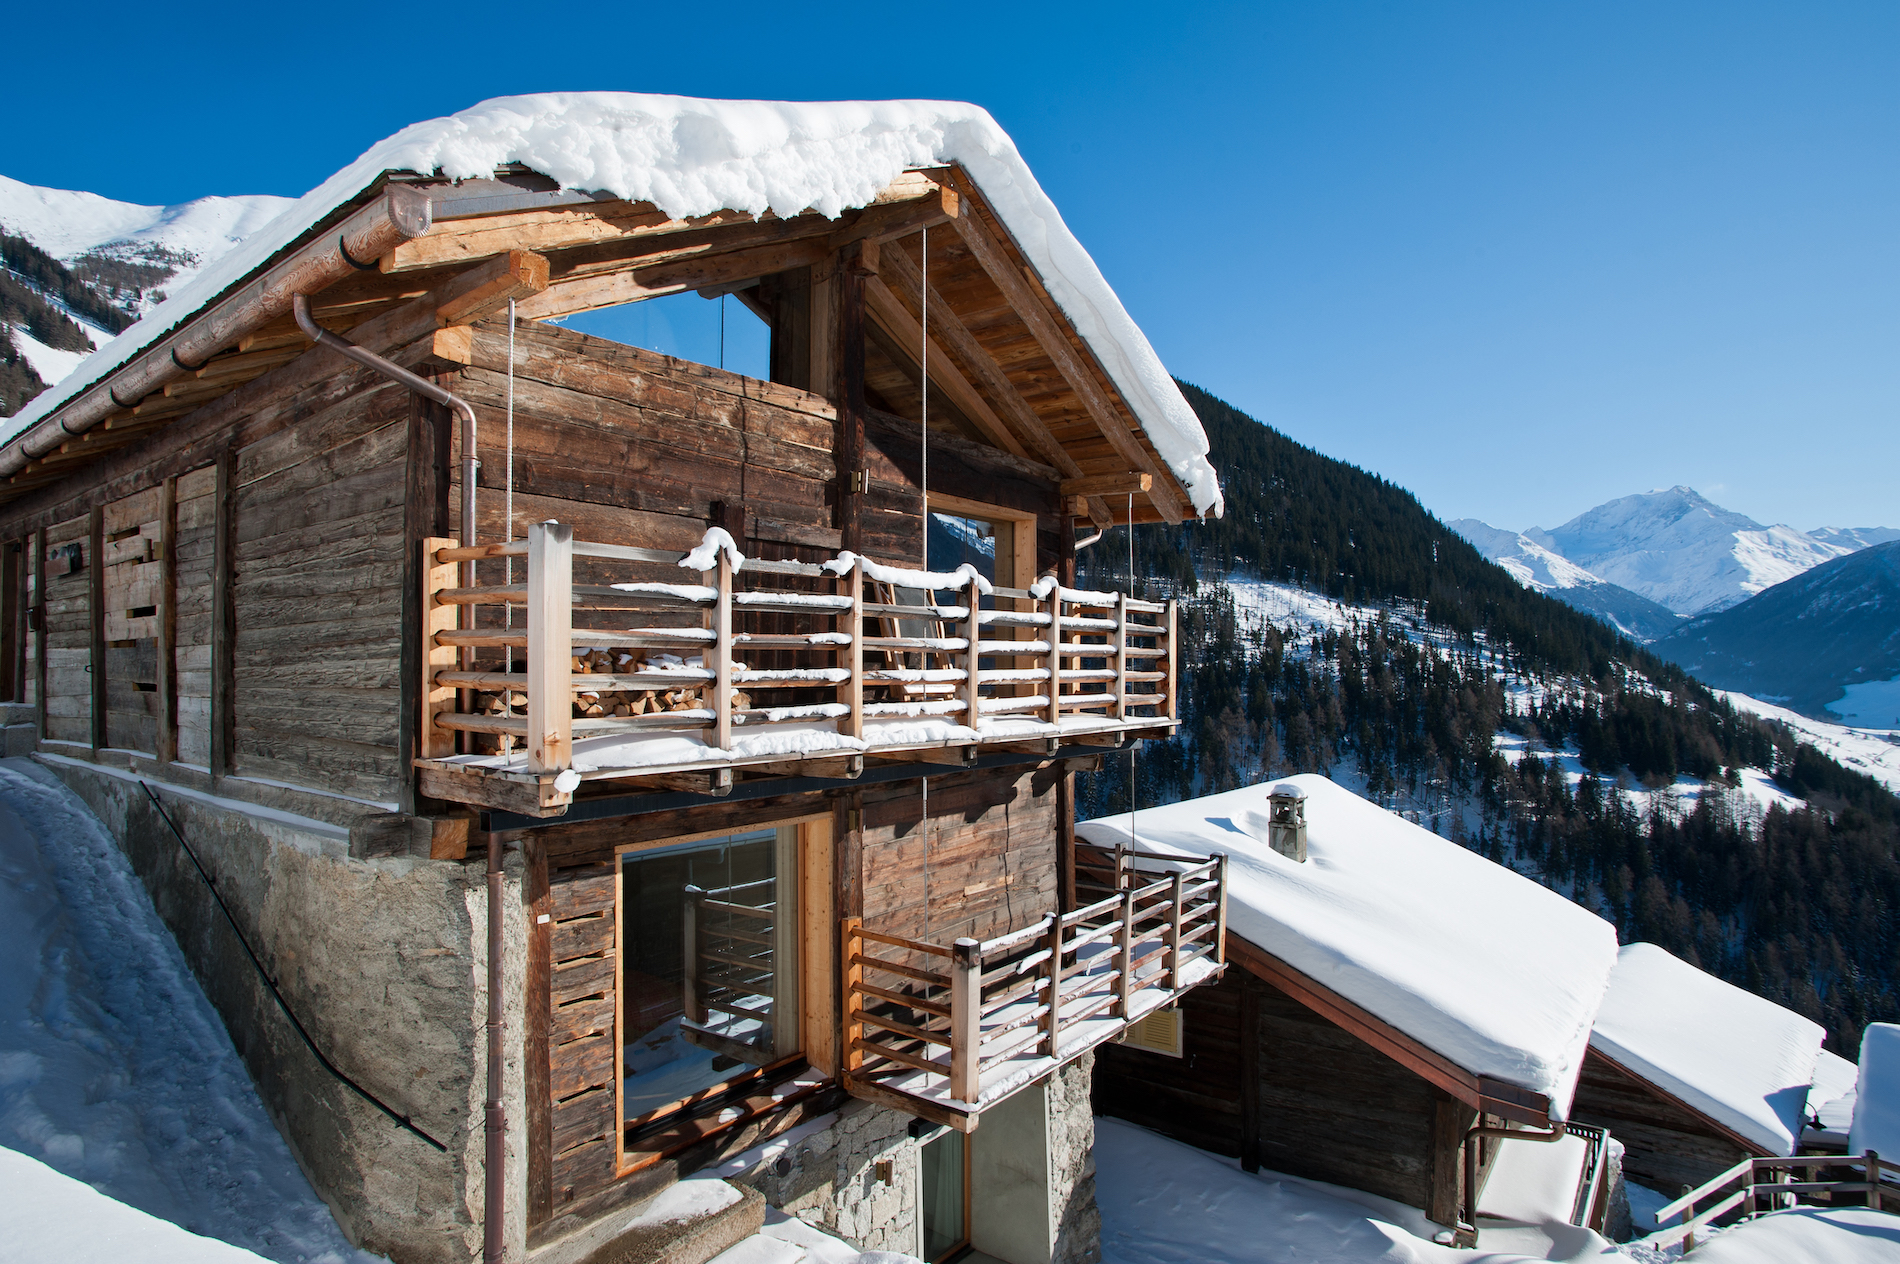 Montagne Alternative, Orsières, for Swiss Tourism Winter Staycation advertorial